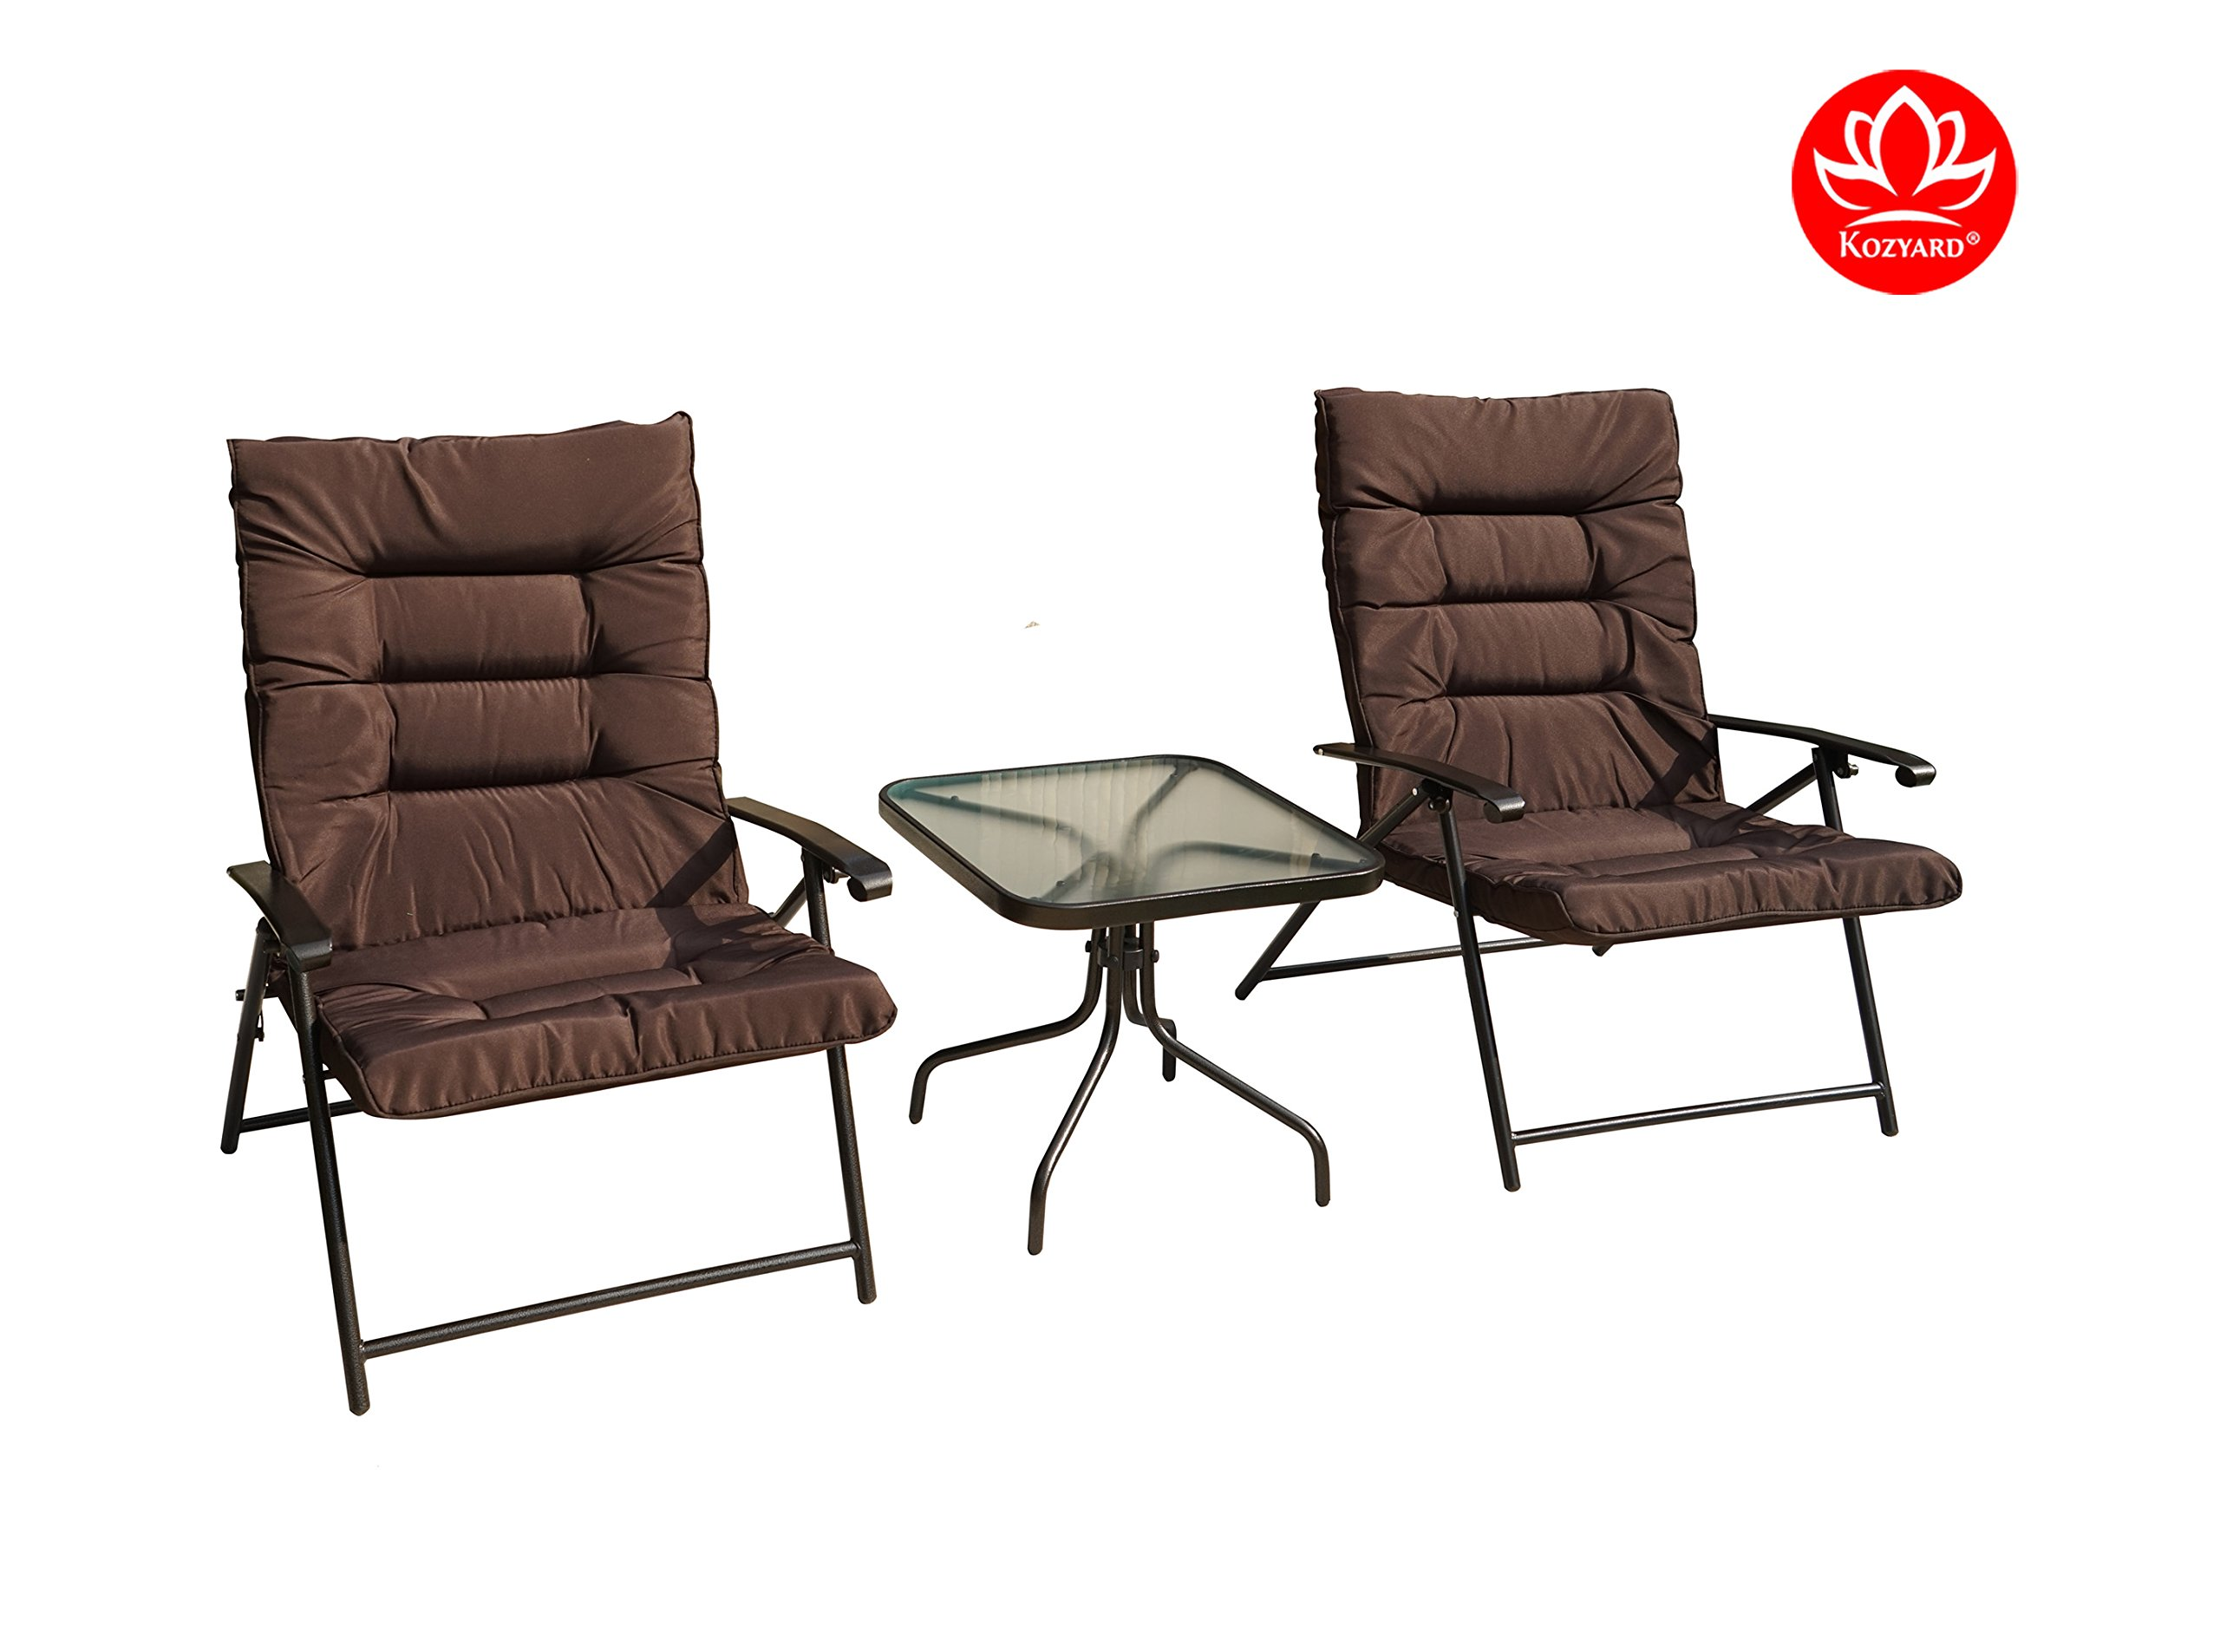 Kozyard Elsa 3 Pieces Outdoor Patio Furniture Padded Folding Sets for Yard, Patio, Deck or Backyard by Kozyard (Image #2)